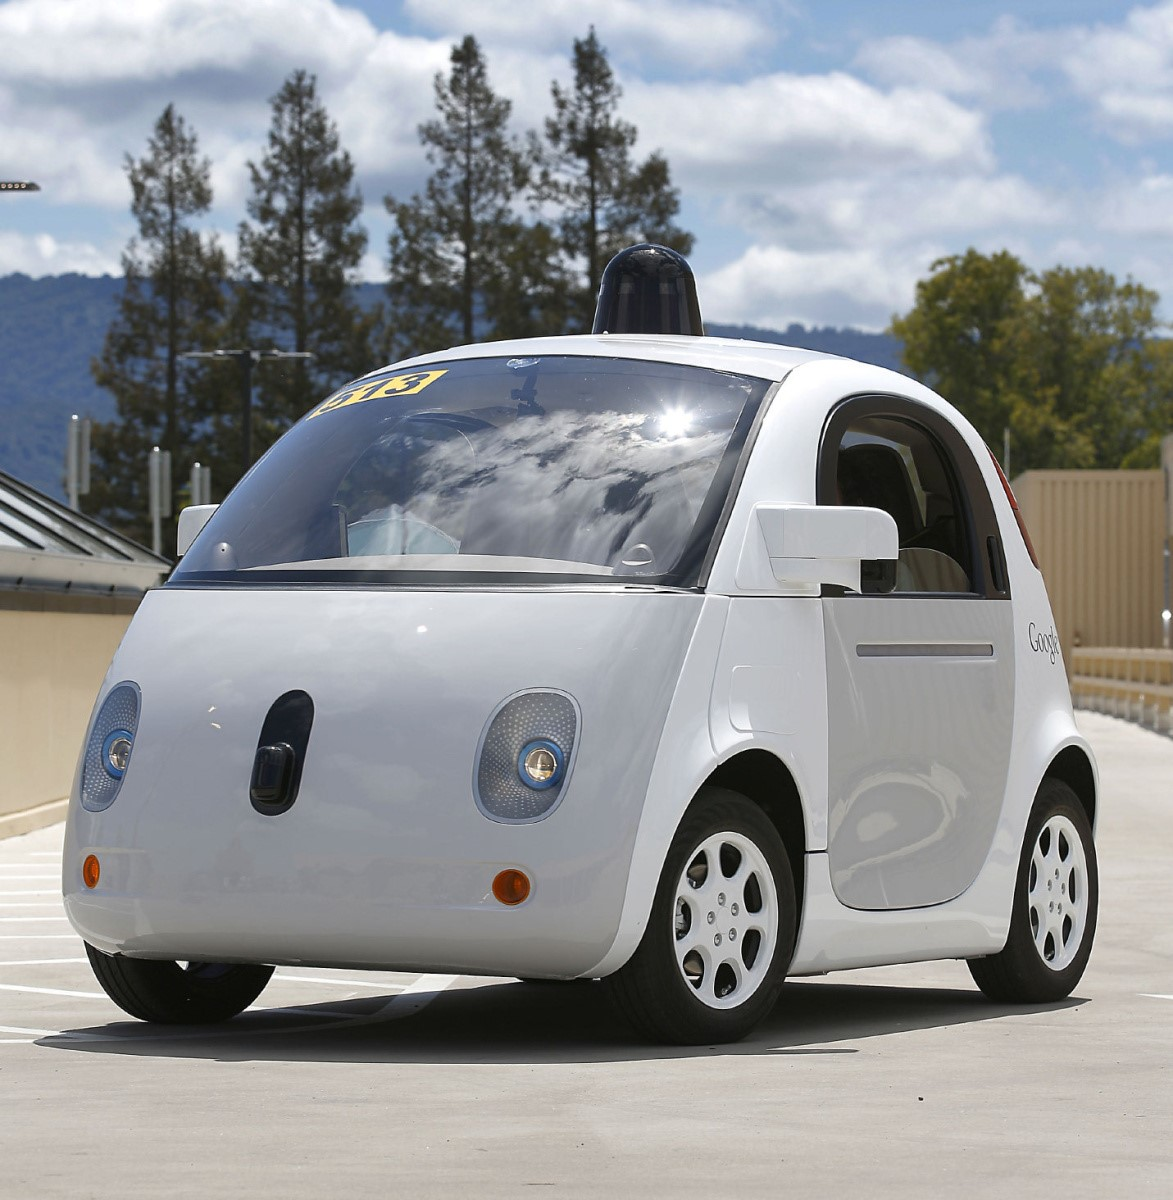 Are we ready for robot cars